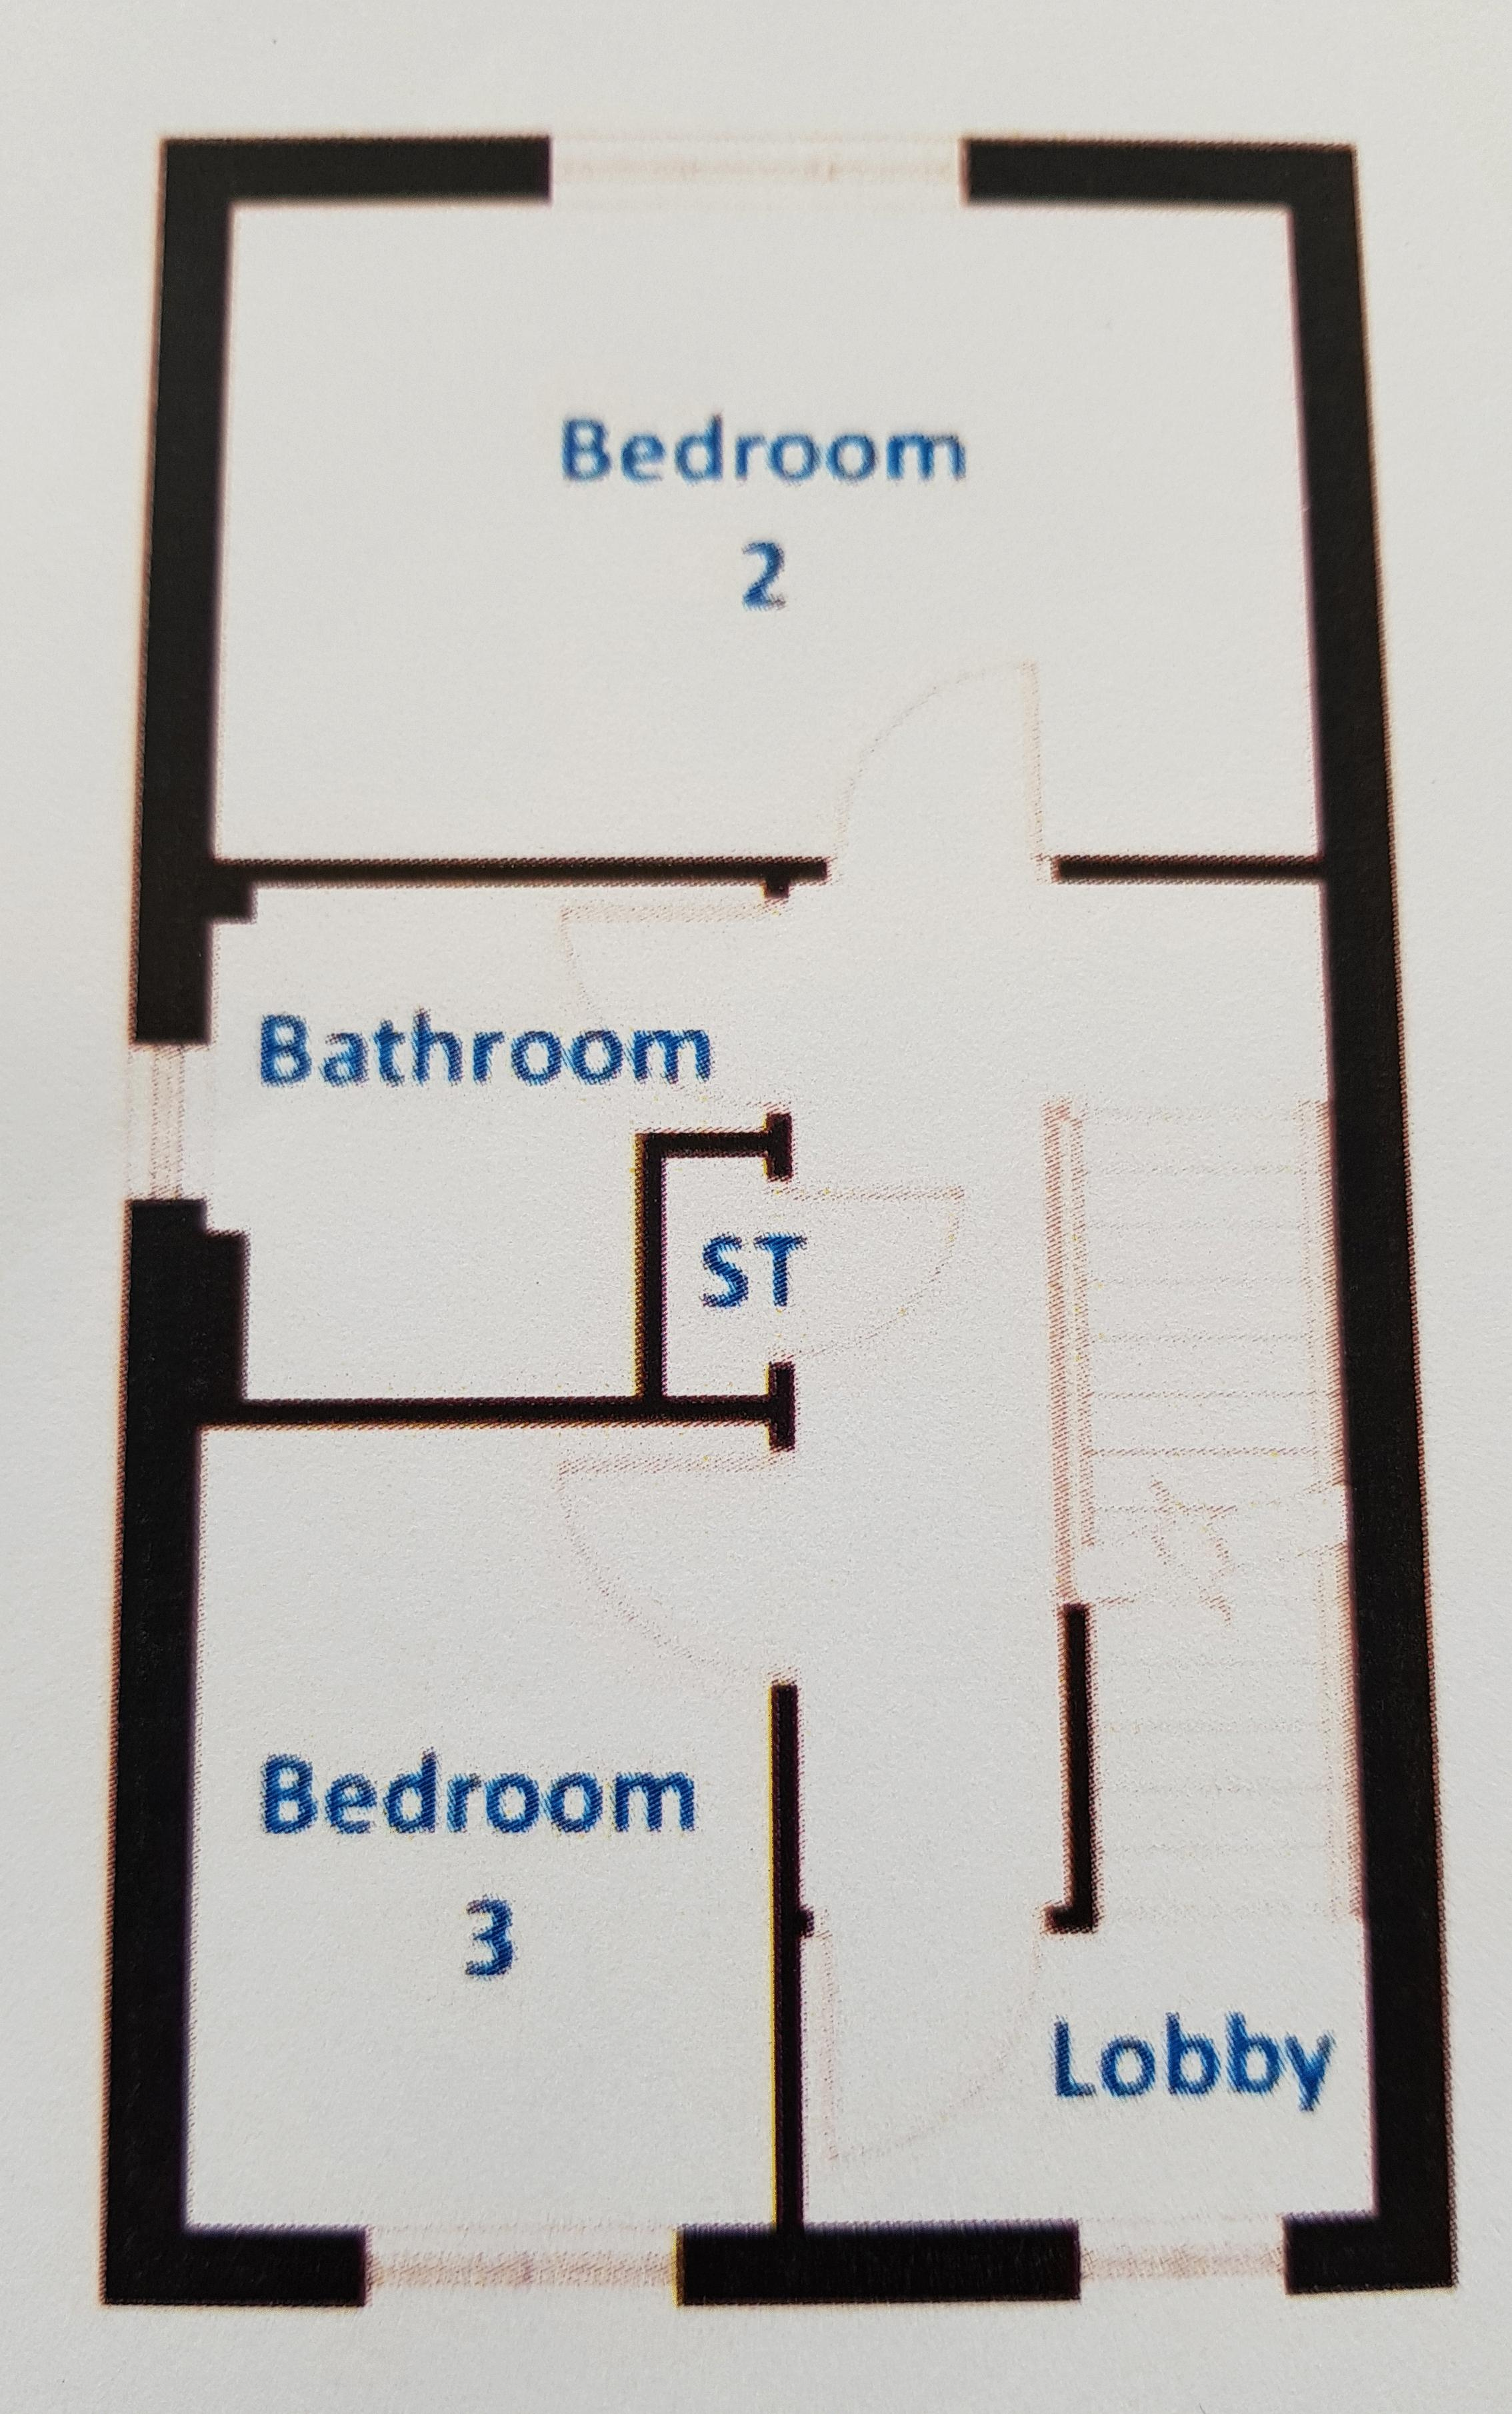 armstrong road scotswood newcastle upon tyne ne15 3 bedroom town house for sale 45825829. Black Bedroom Furniture Sets. Home Design Ideas